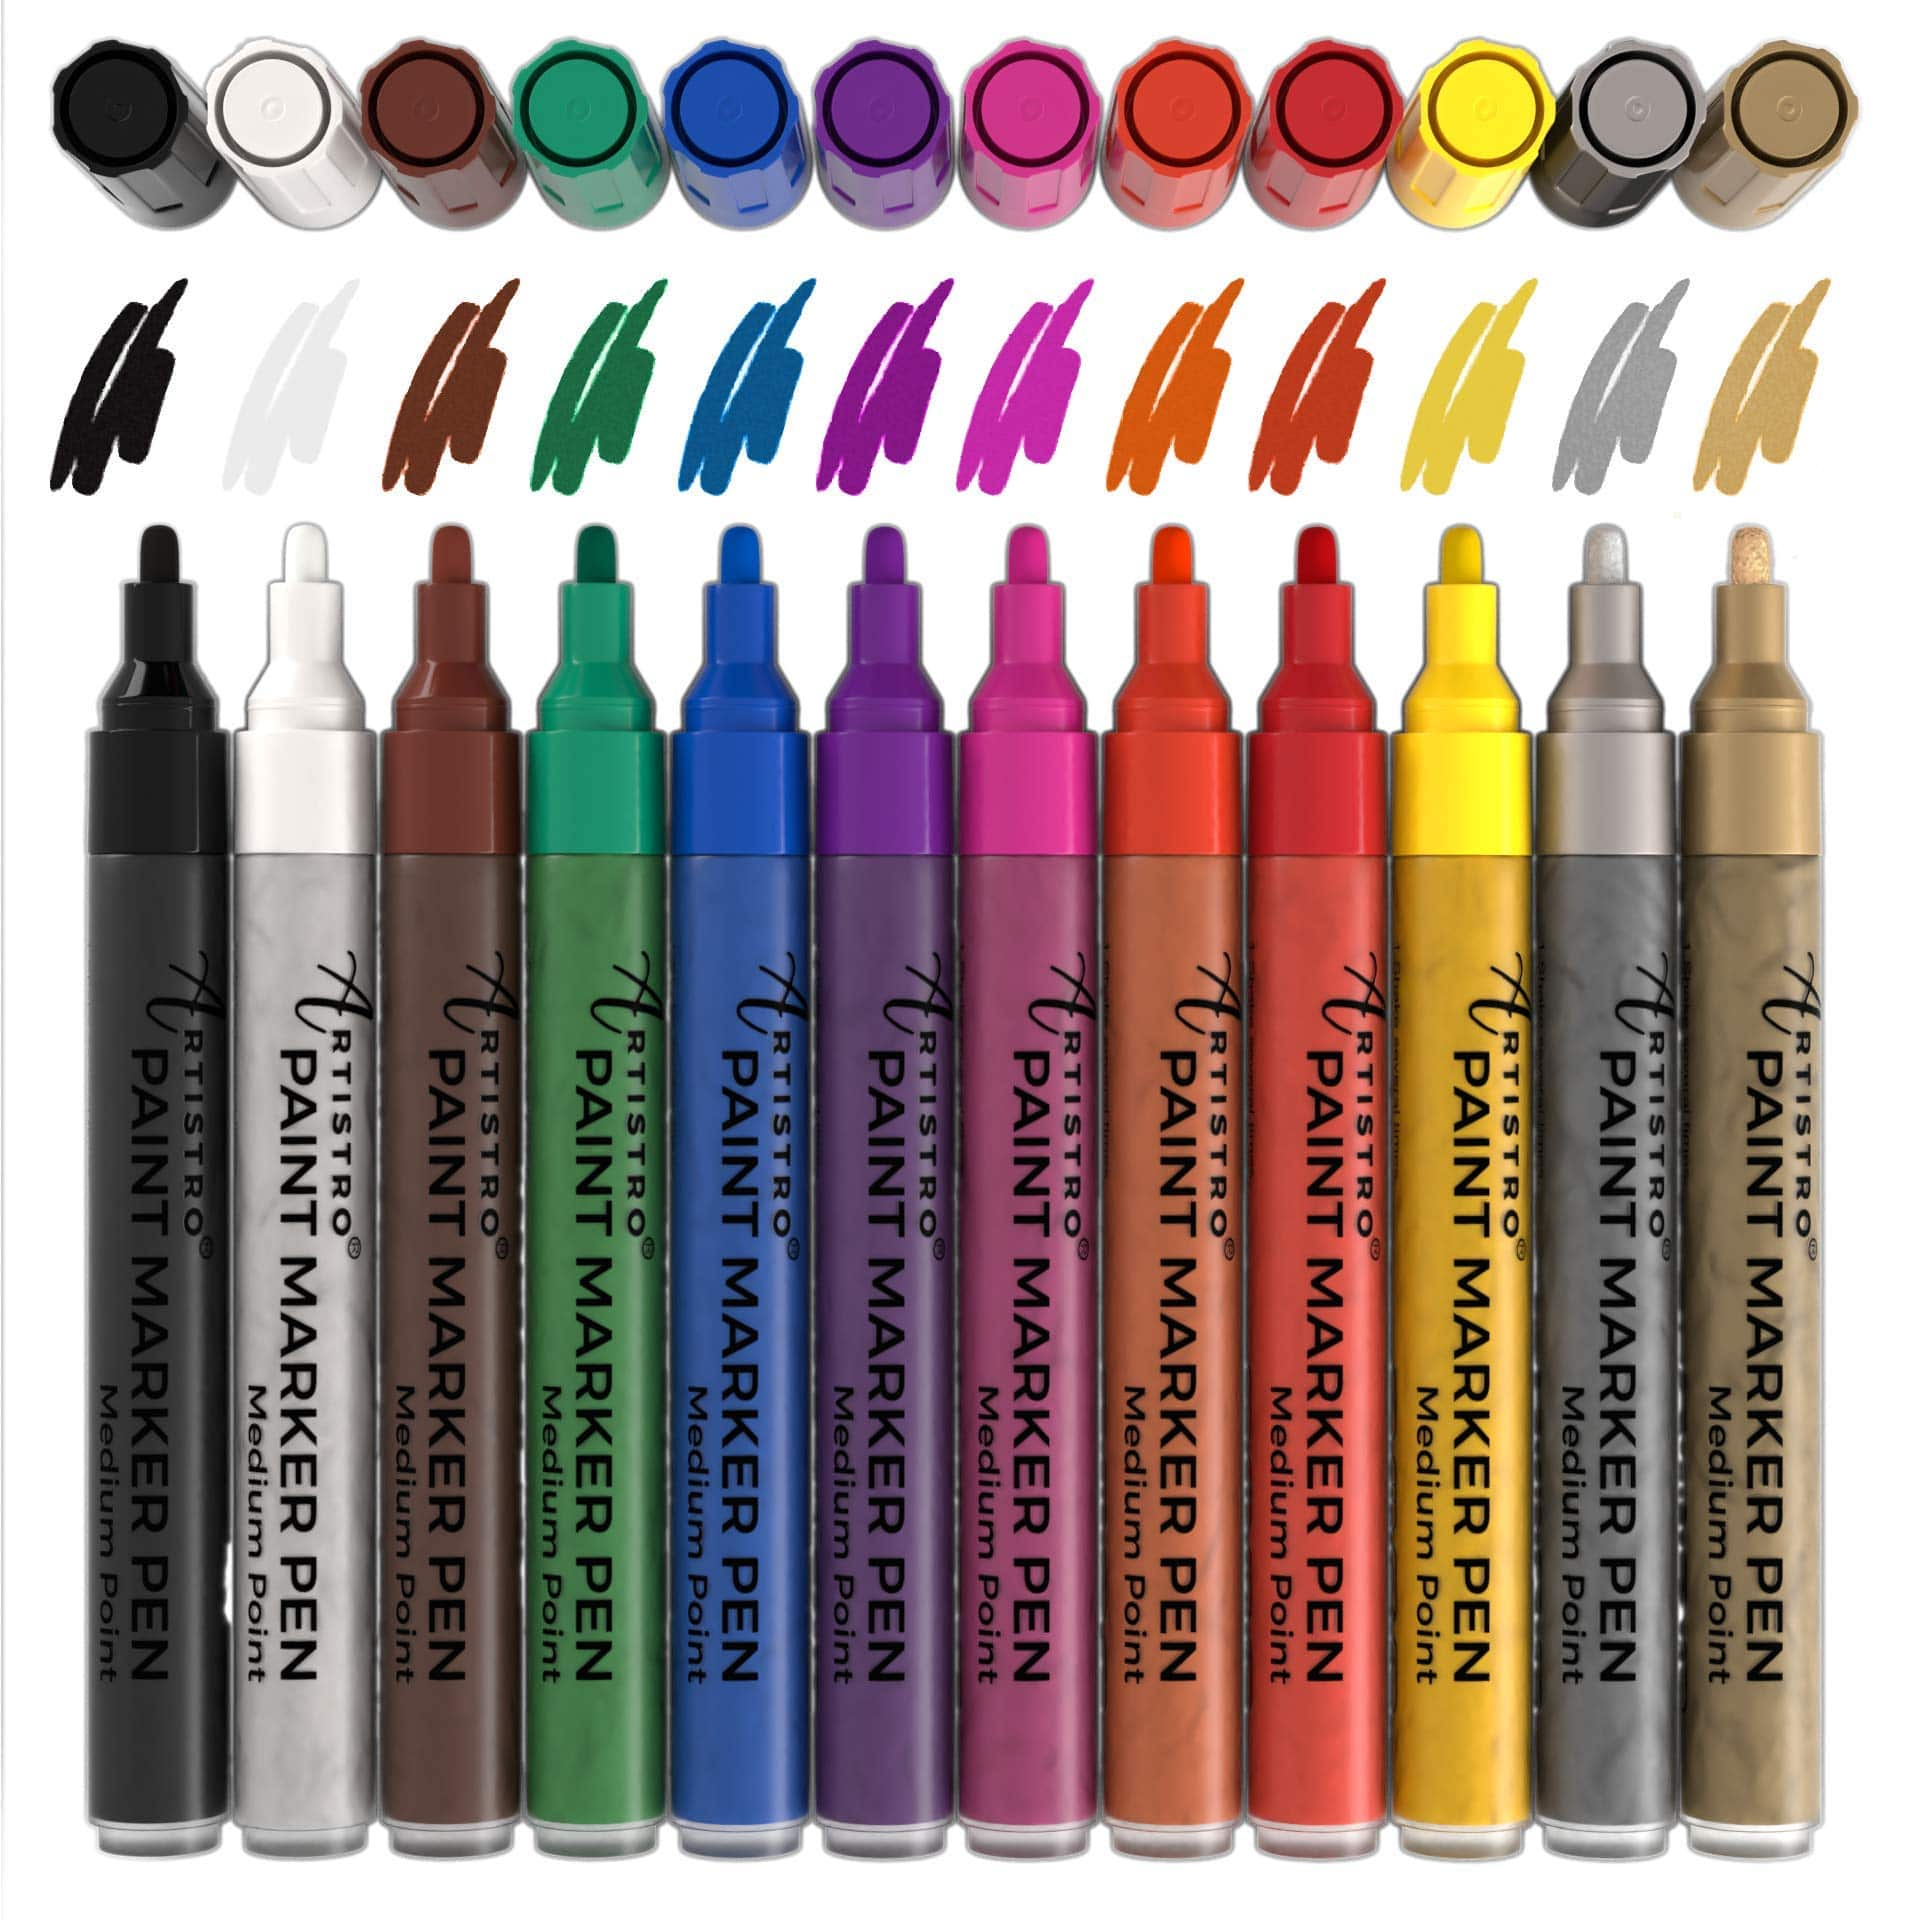 Artistro Acrylic Paint Markers review